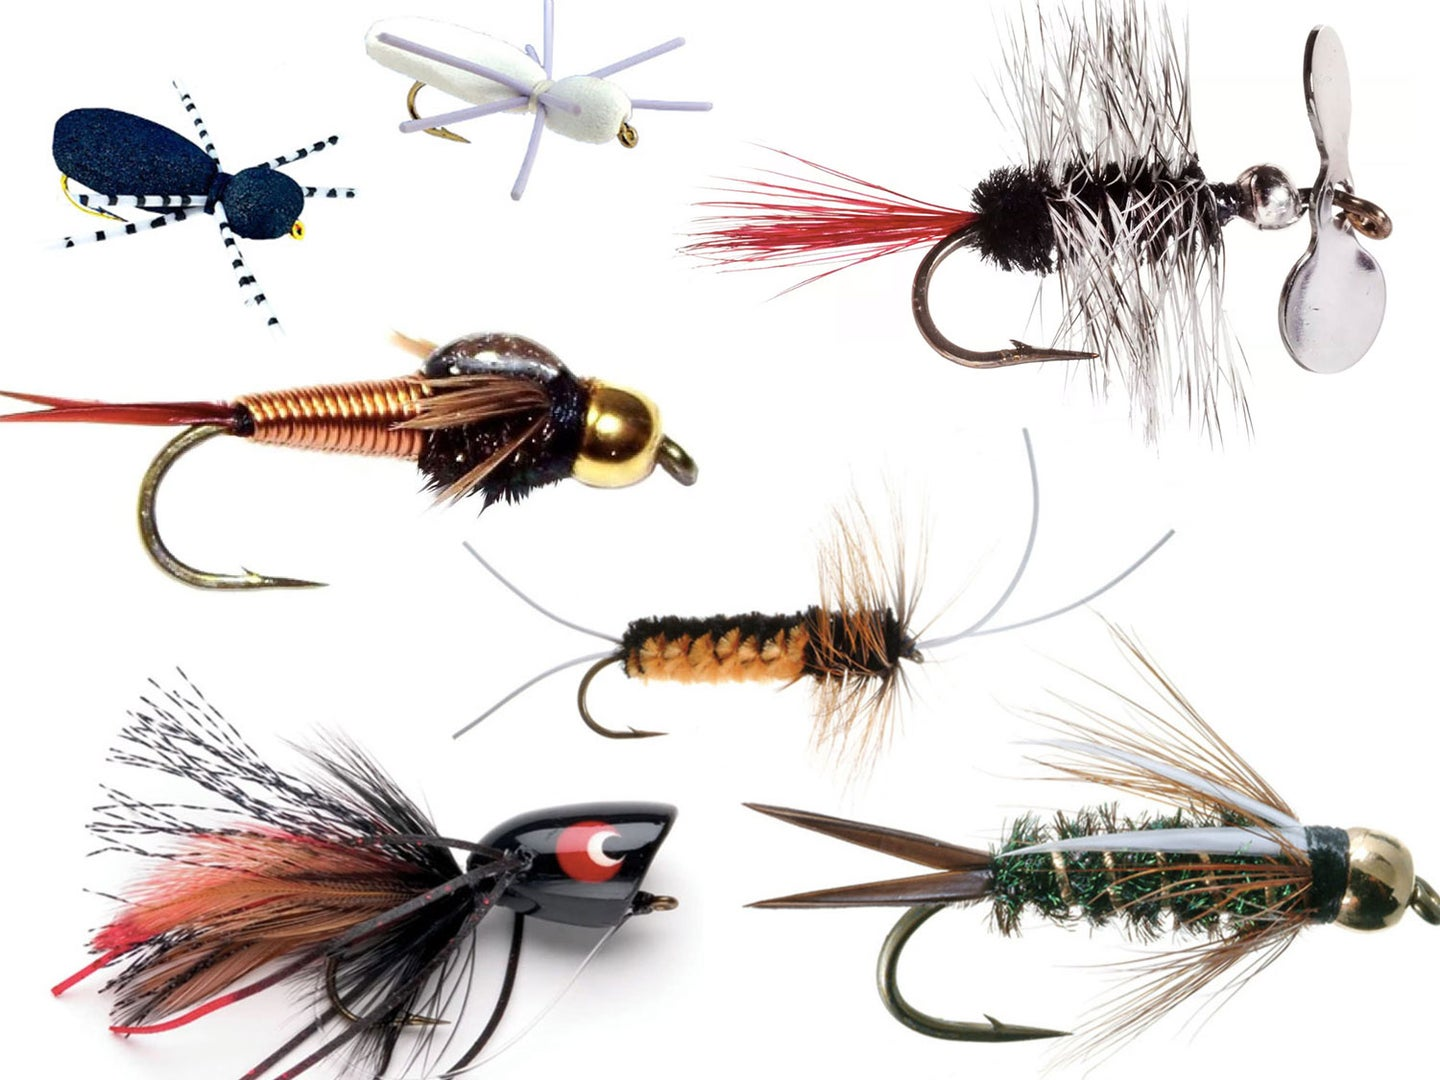 The Best Flies for Catching Panfish